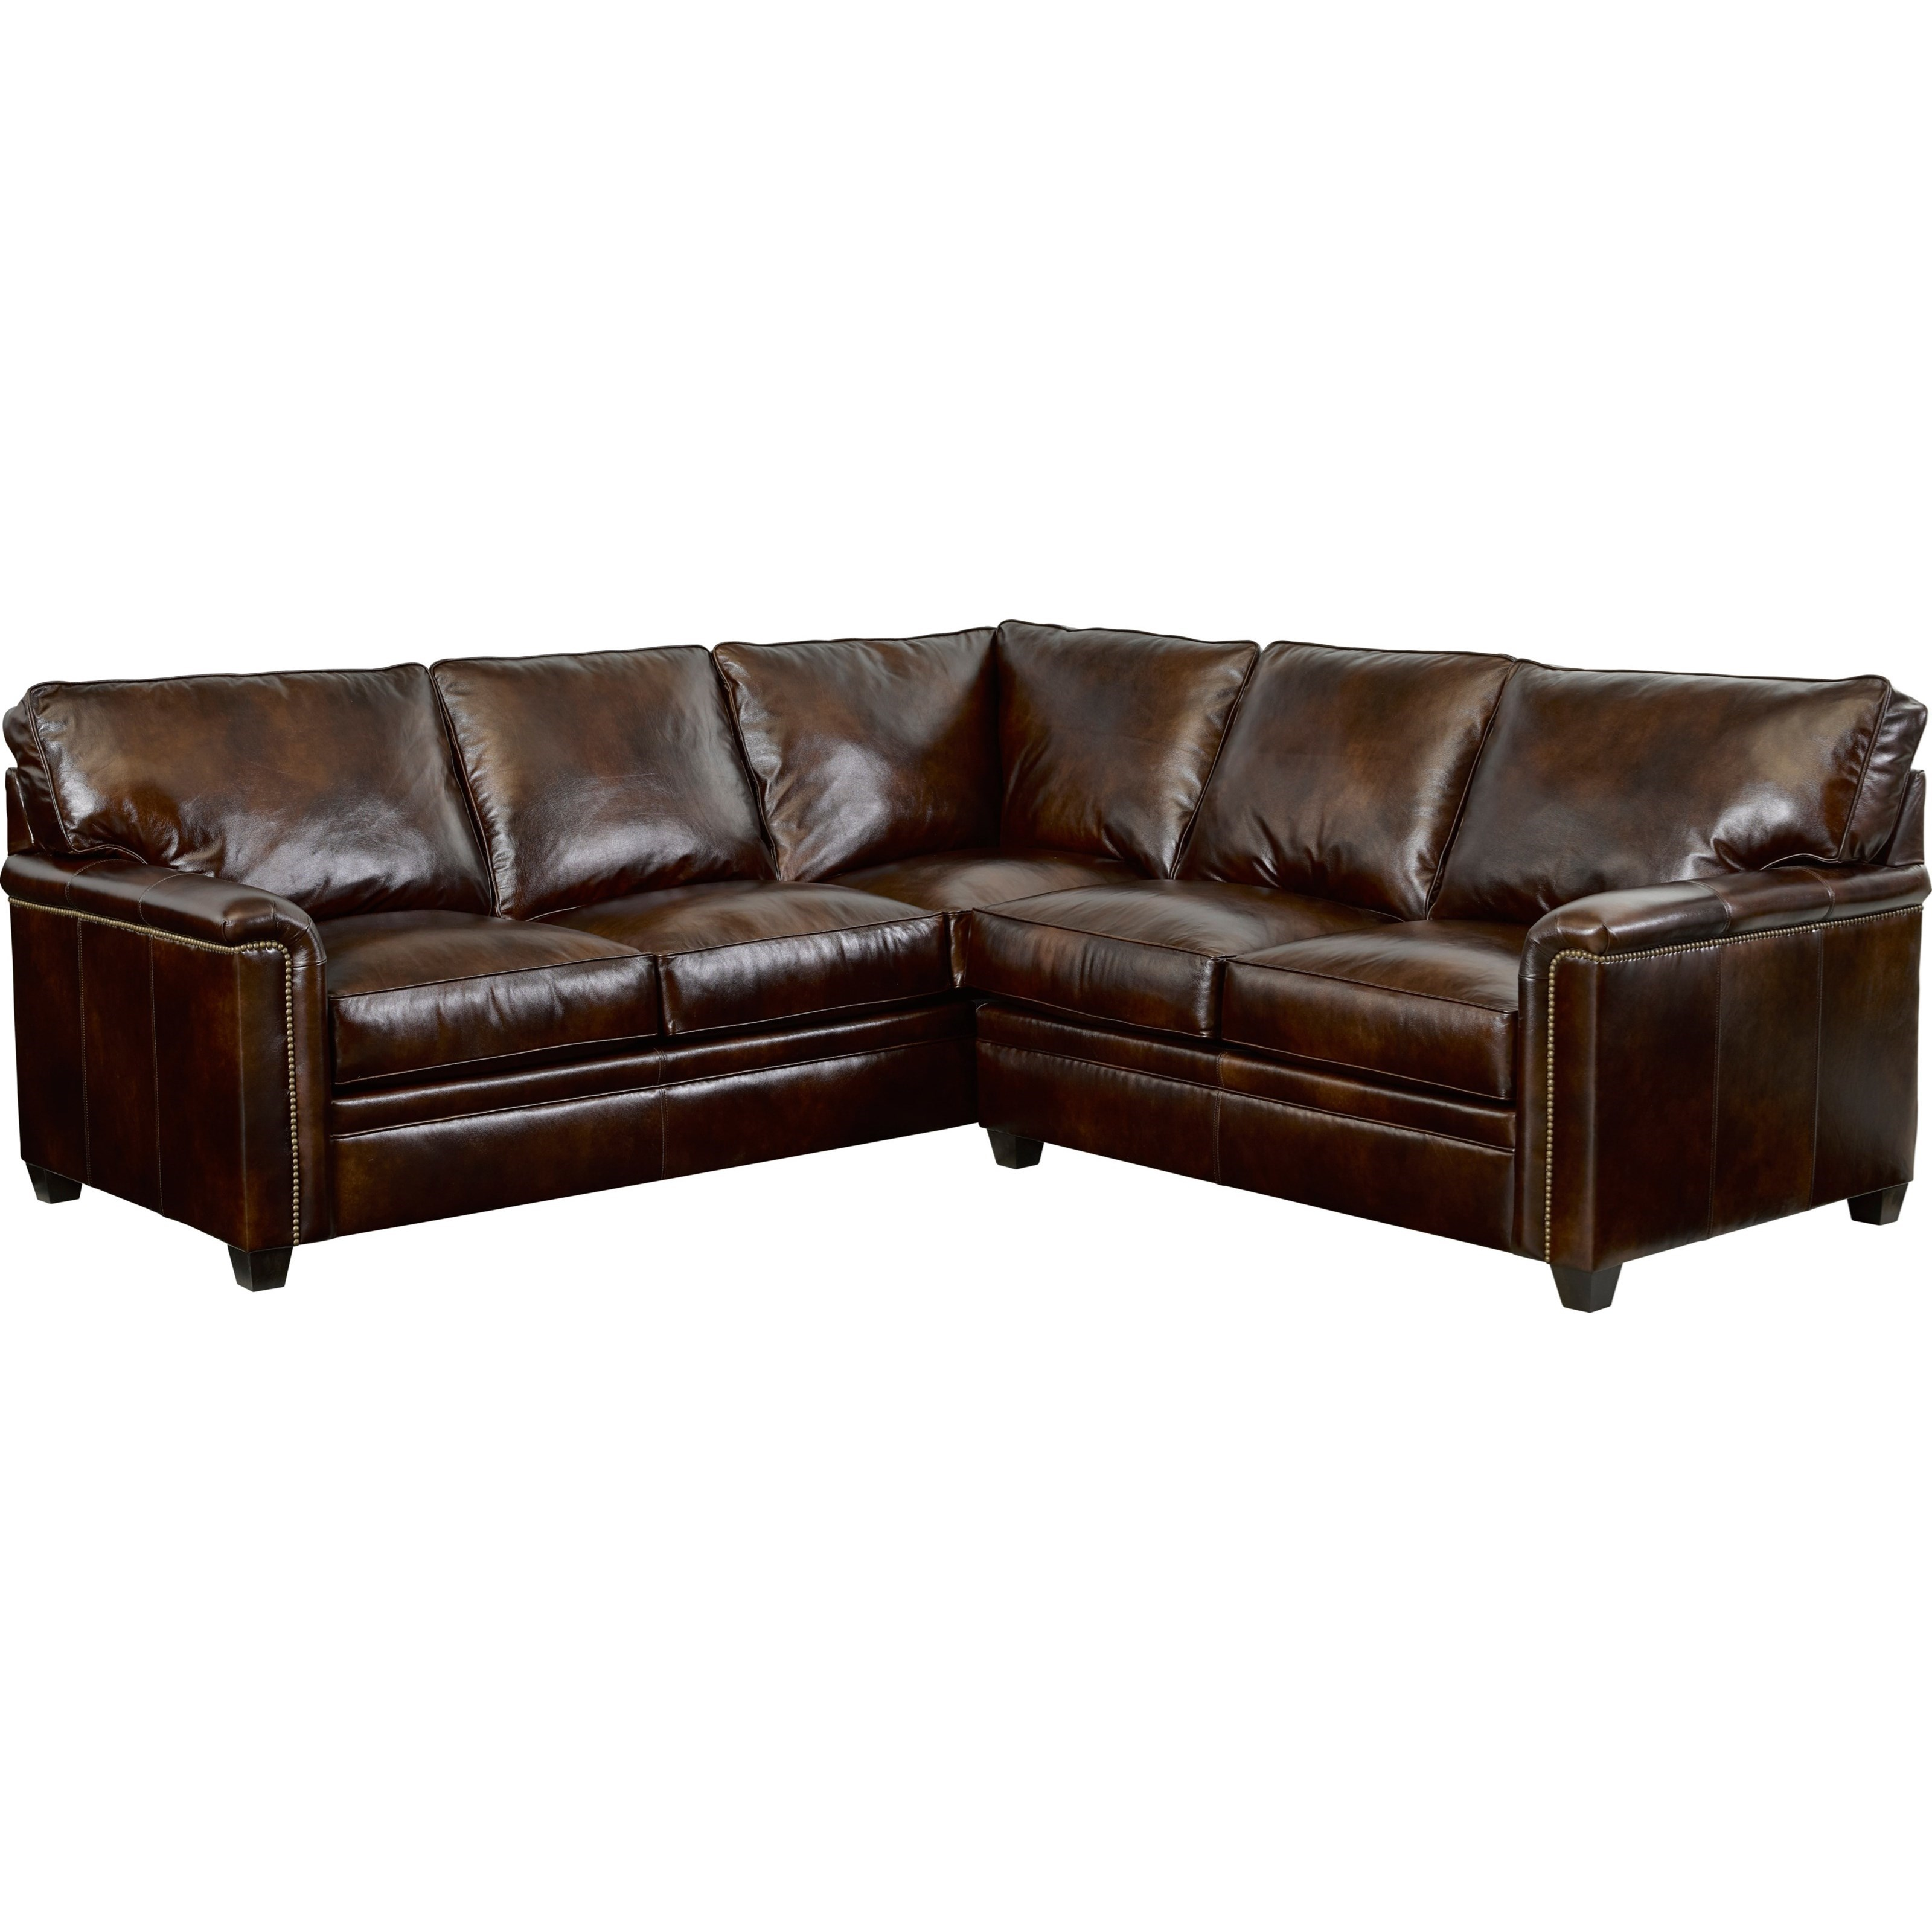 Broyhill Furniture Warren LAF Corner Sofa Sectional with Nail Head ...